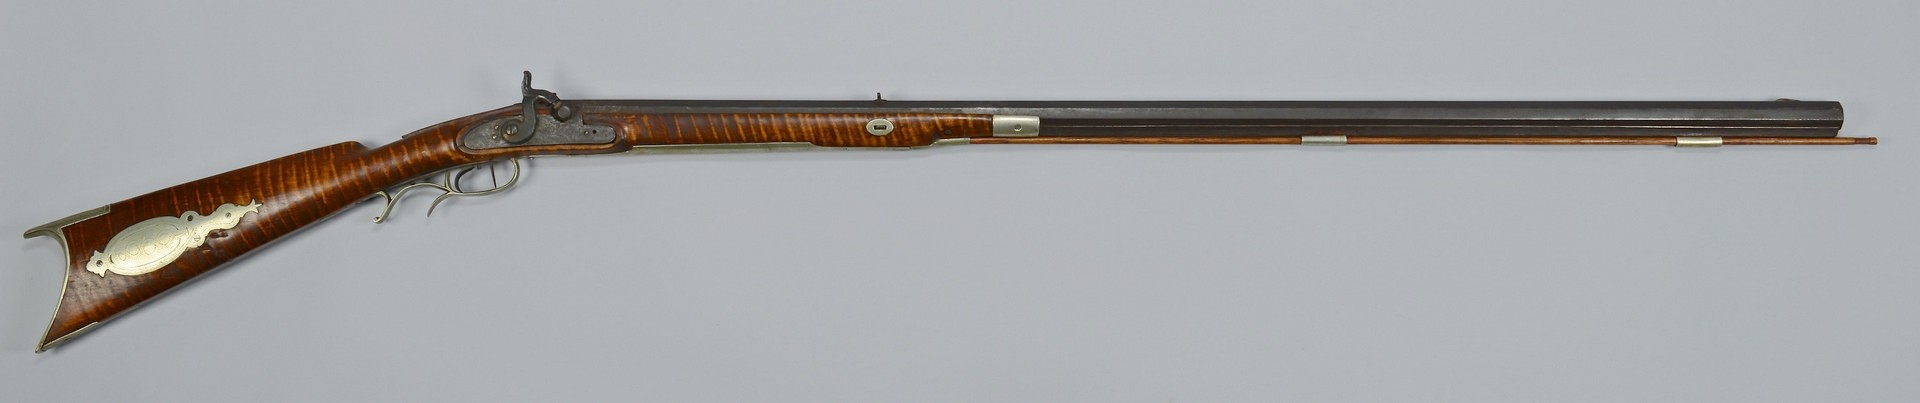 Lot 397: Half Stock Percussion Rifle, Inlays